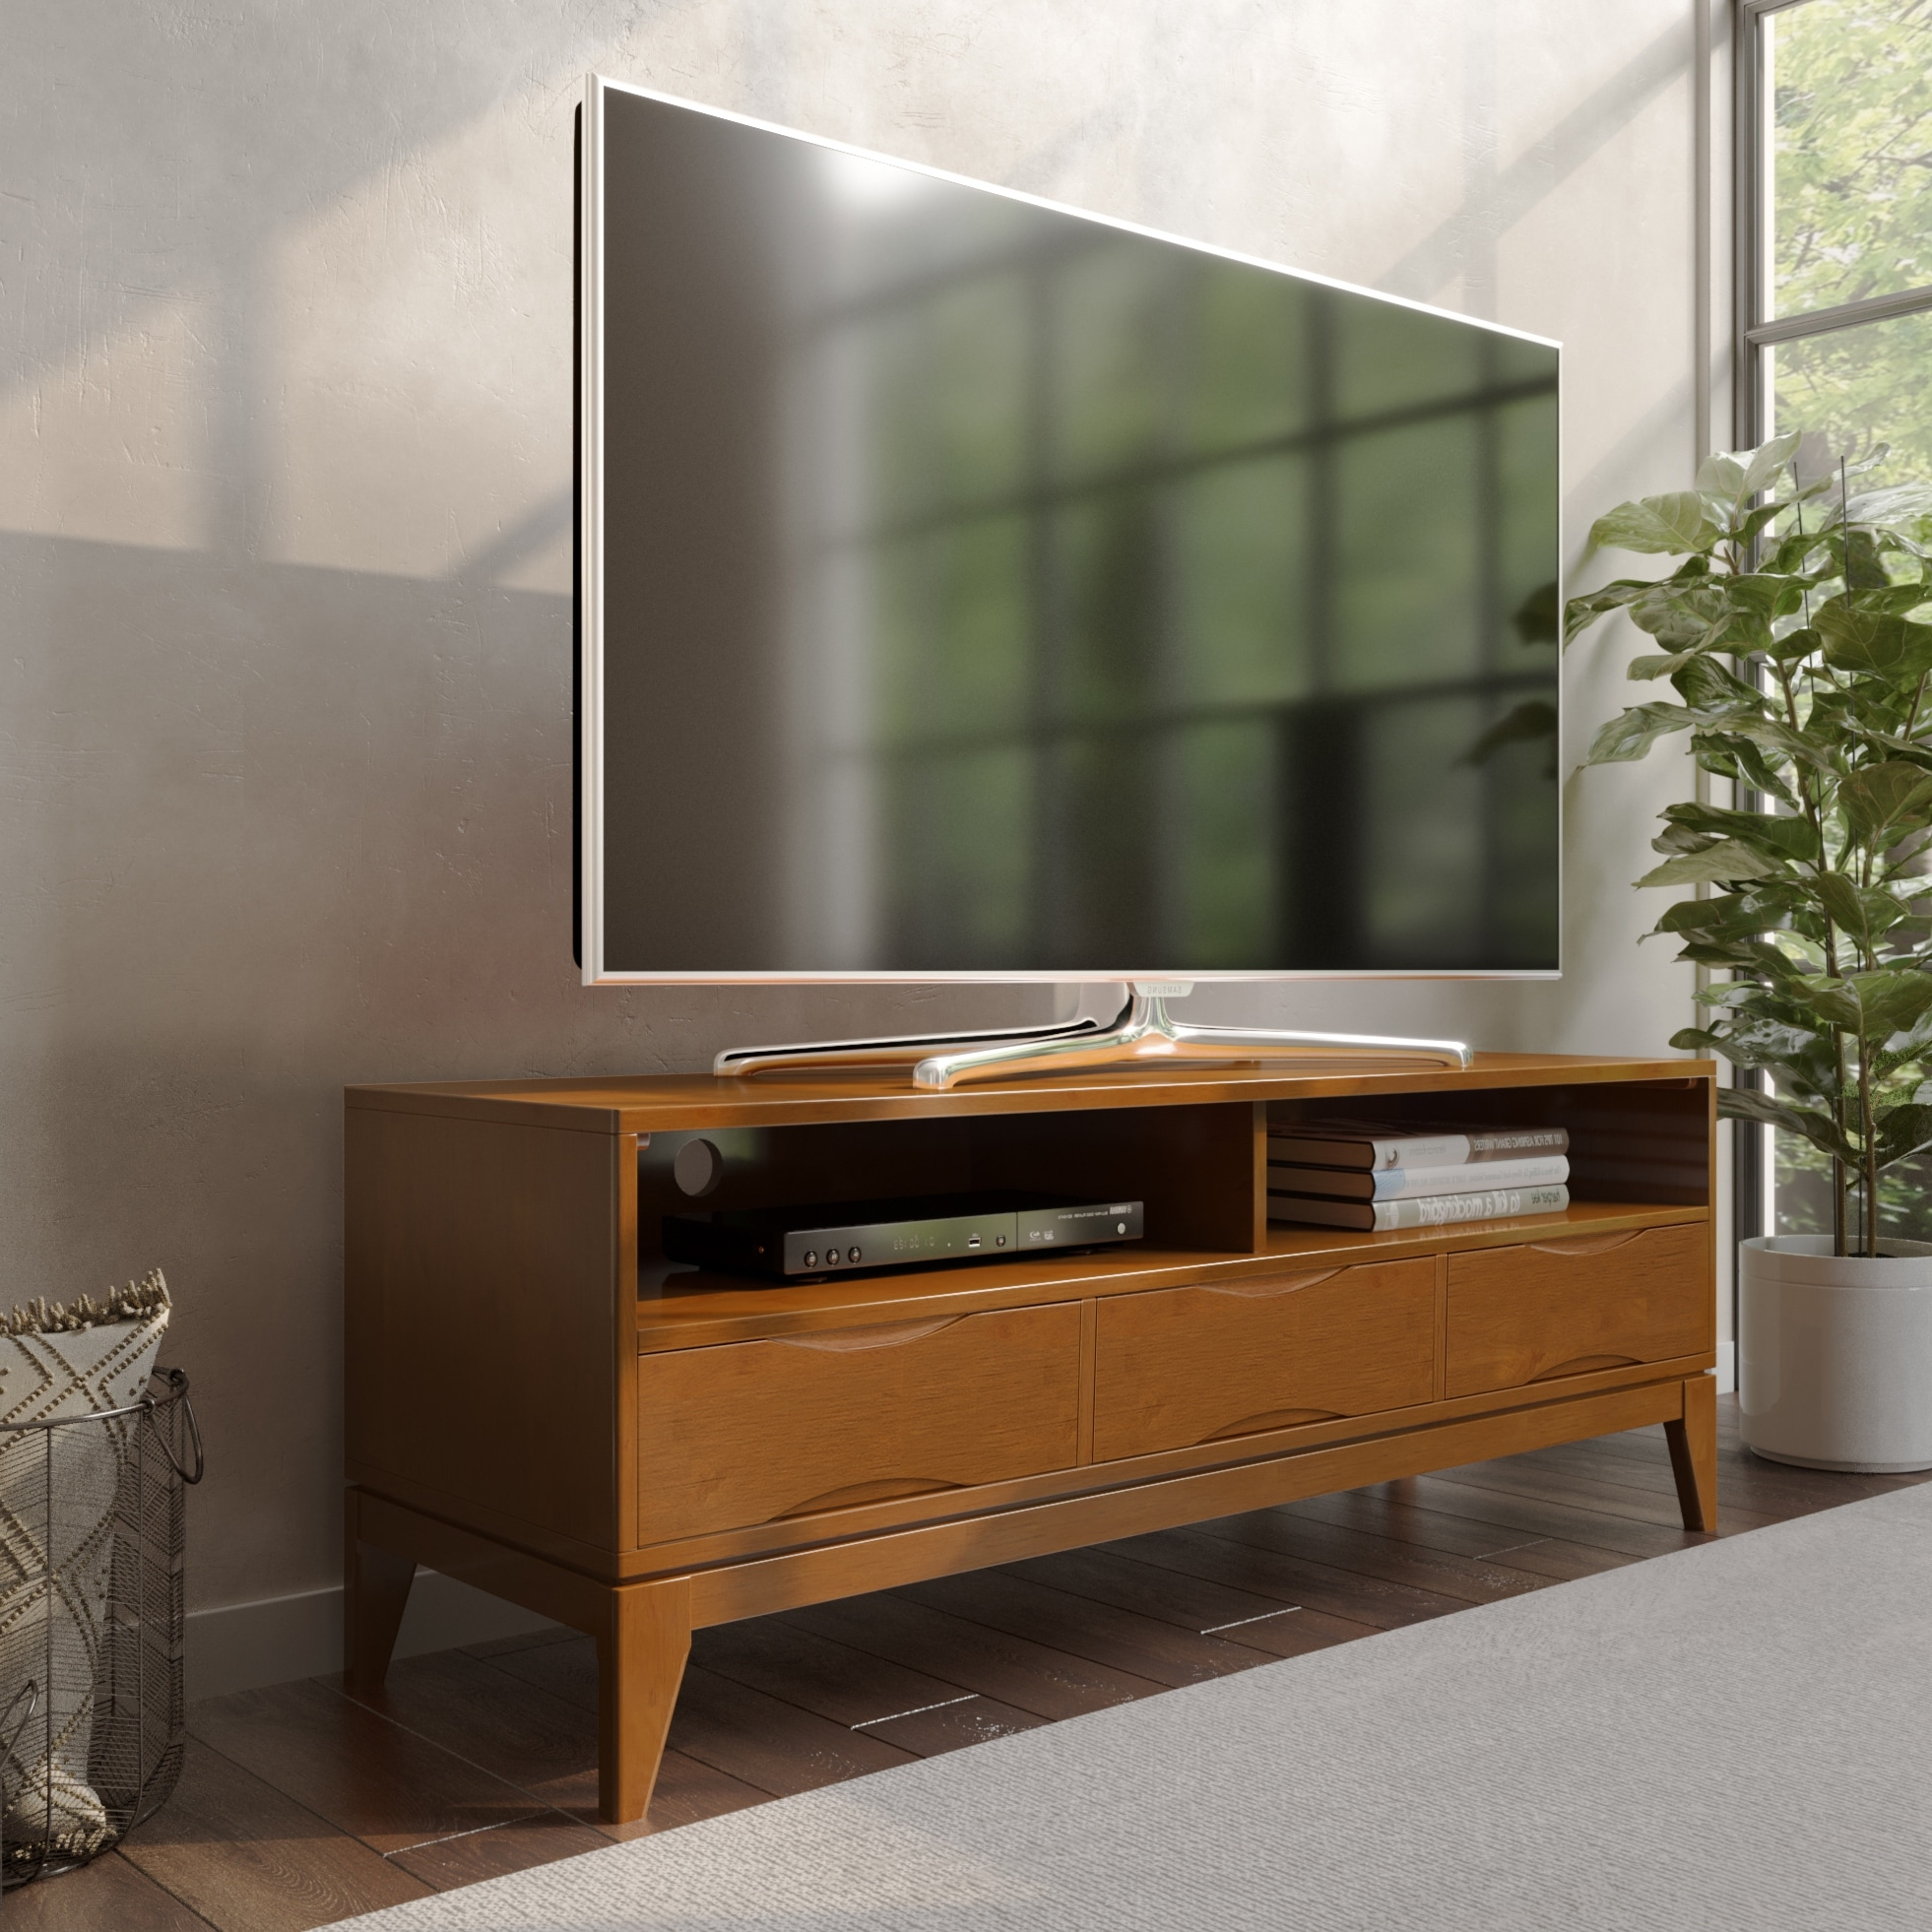 """Wyndenhall Pearson Solid Hardwood 60 Inch Wide Mid Century Throughout Twila Tv Stands For Tvs Up To 55"""" (View 14 of 20)"""